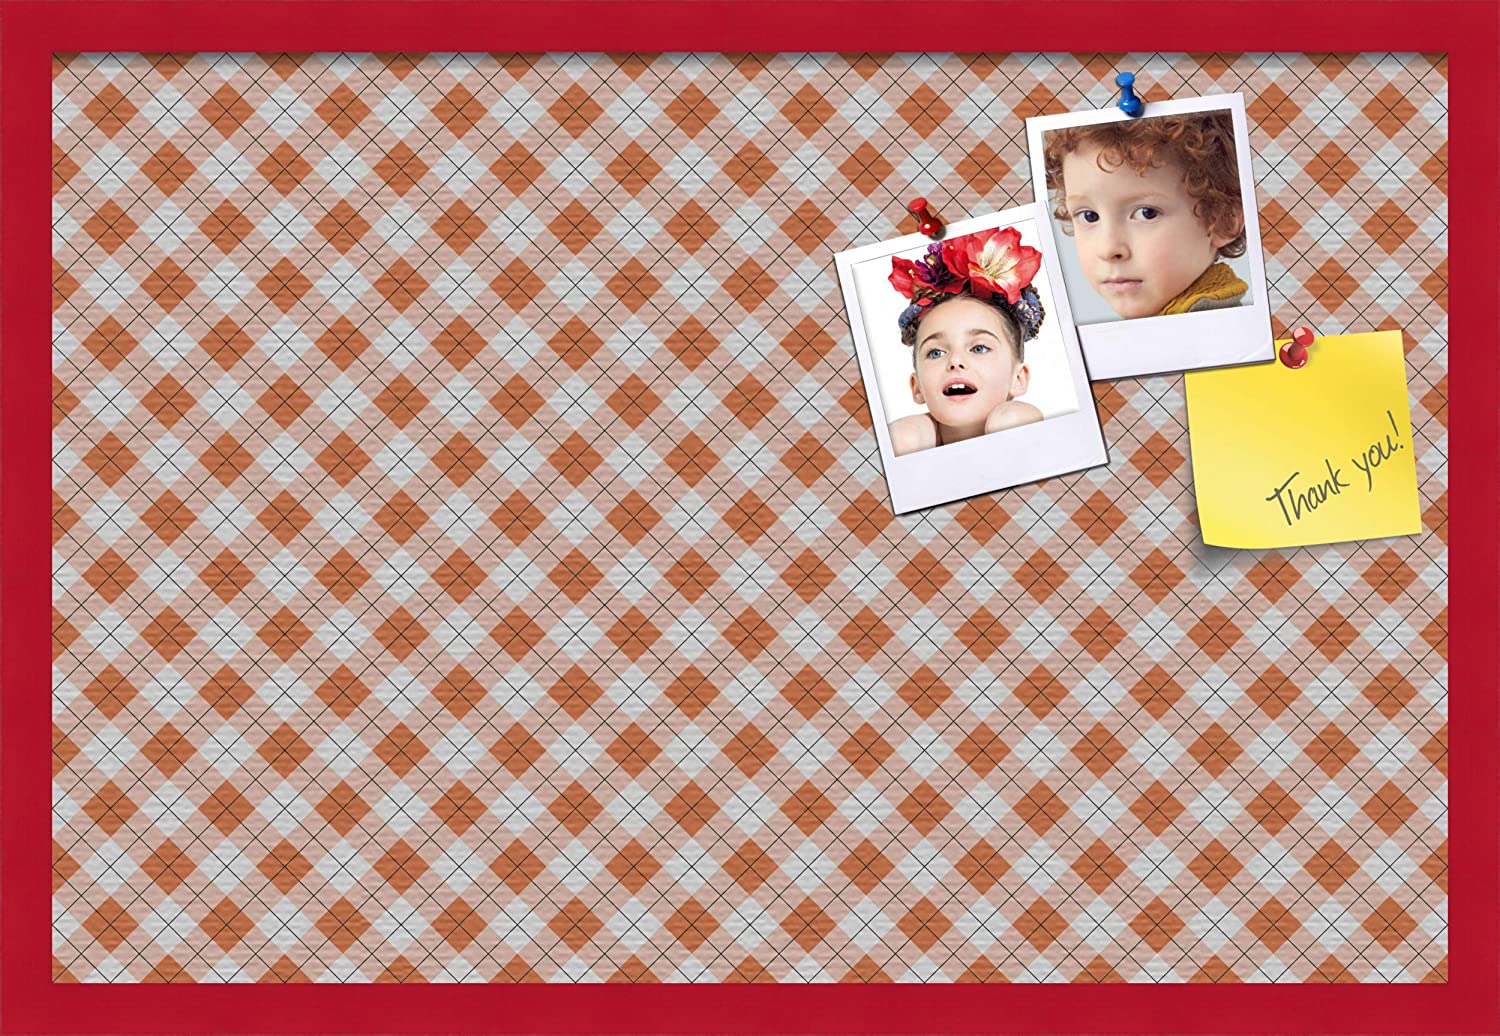 This Argyle Burnt Orange Pin Board Comes with a Fabric Style Canvas Finish in a Blue Stain on Beech Frame PinPix-634-16x16/_0066-81792-YBLU ArtToFrames 16x16 Inch Custom Cork Bulletin Board